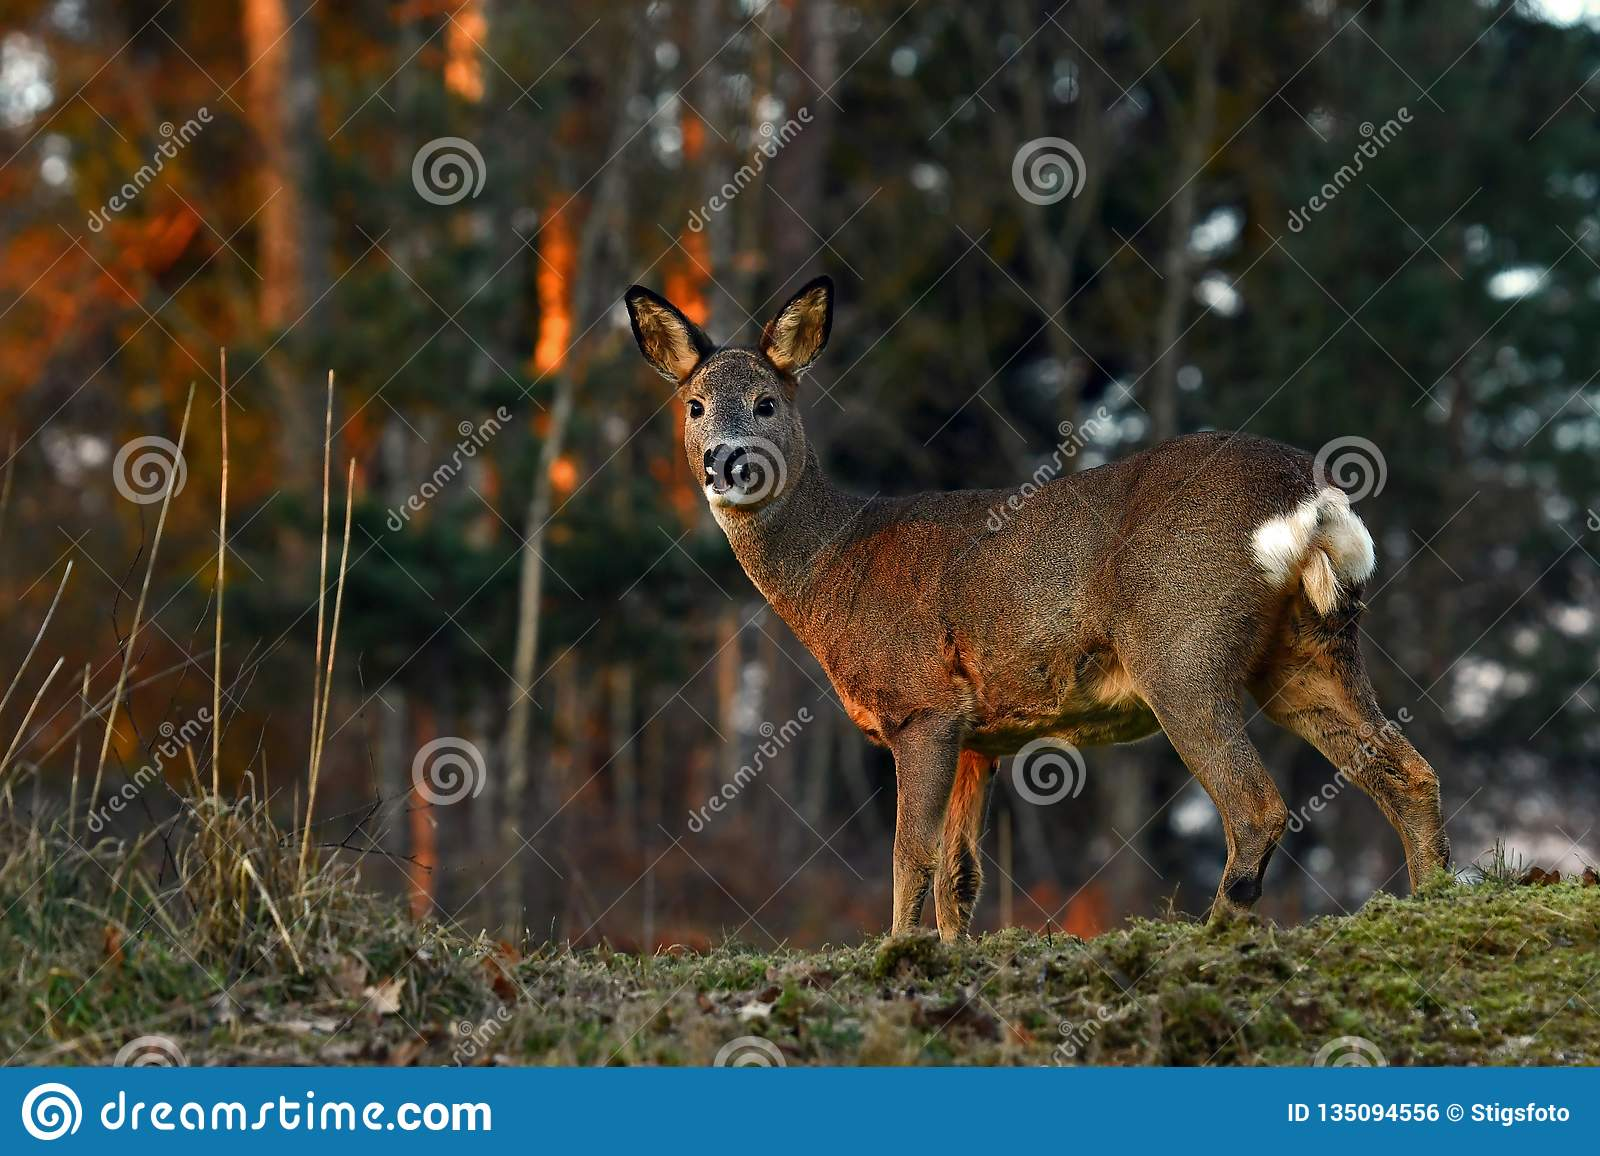 Roe deer in a warm morning light